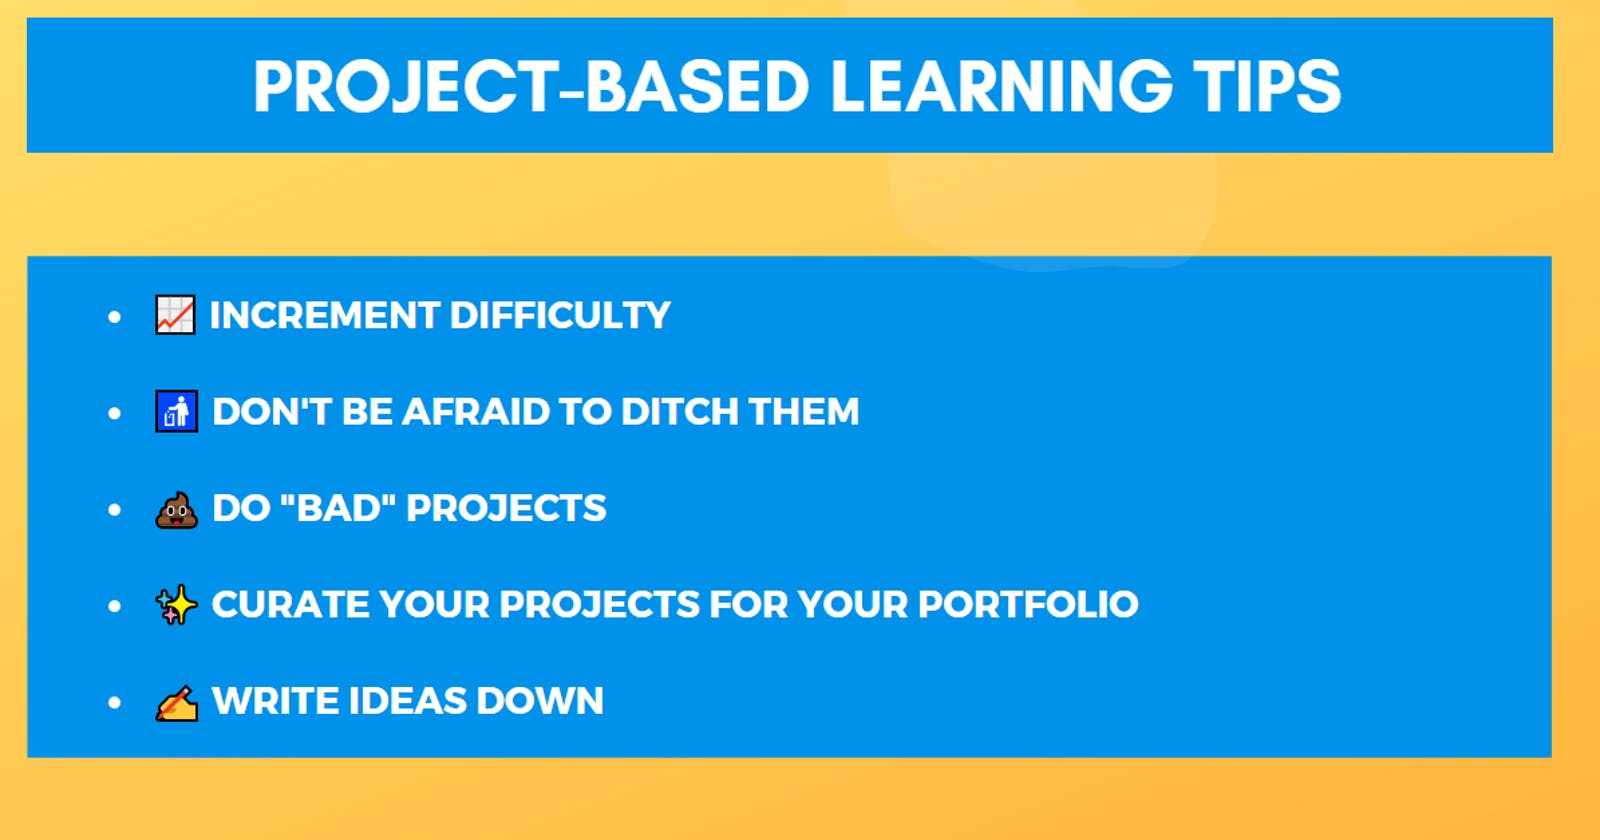 Tips on Learning through Projects